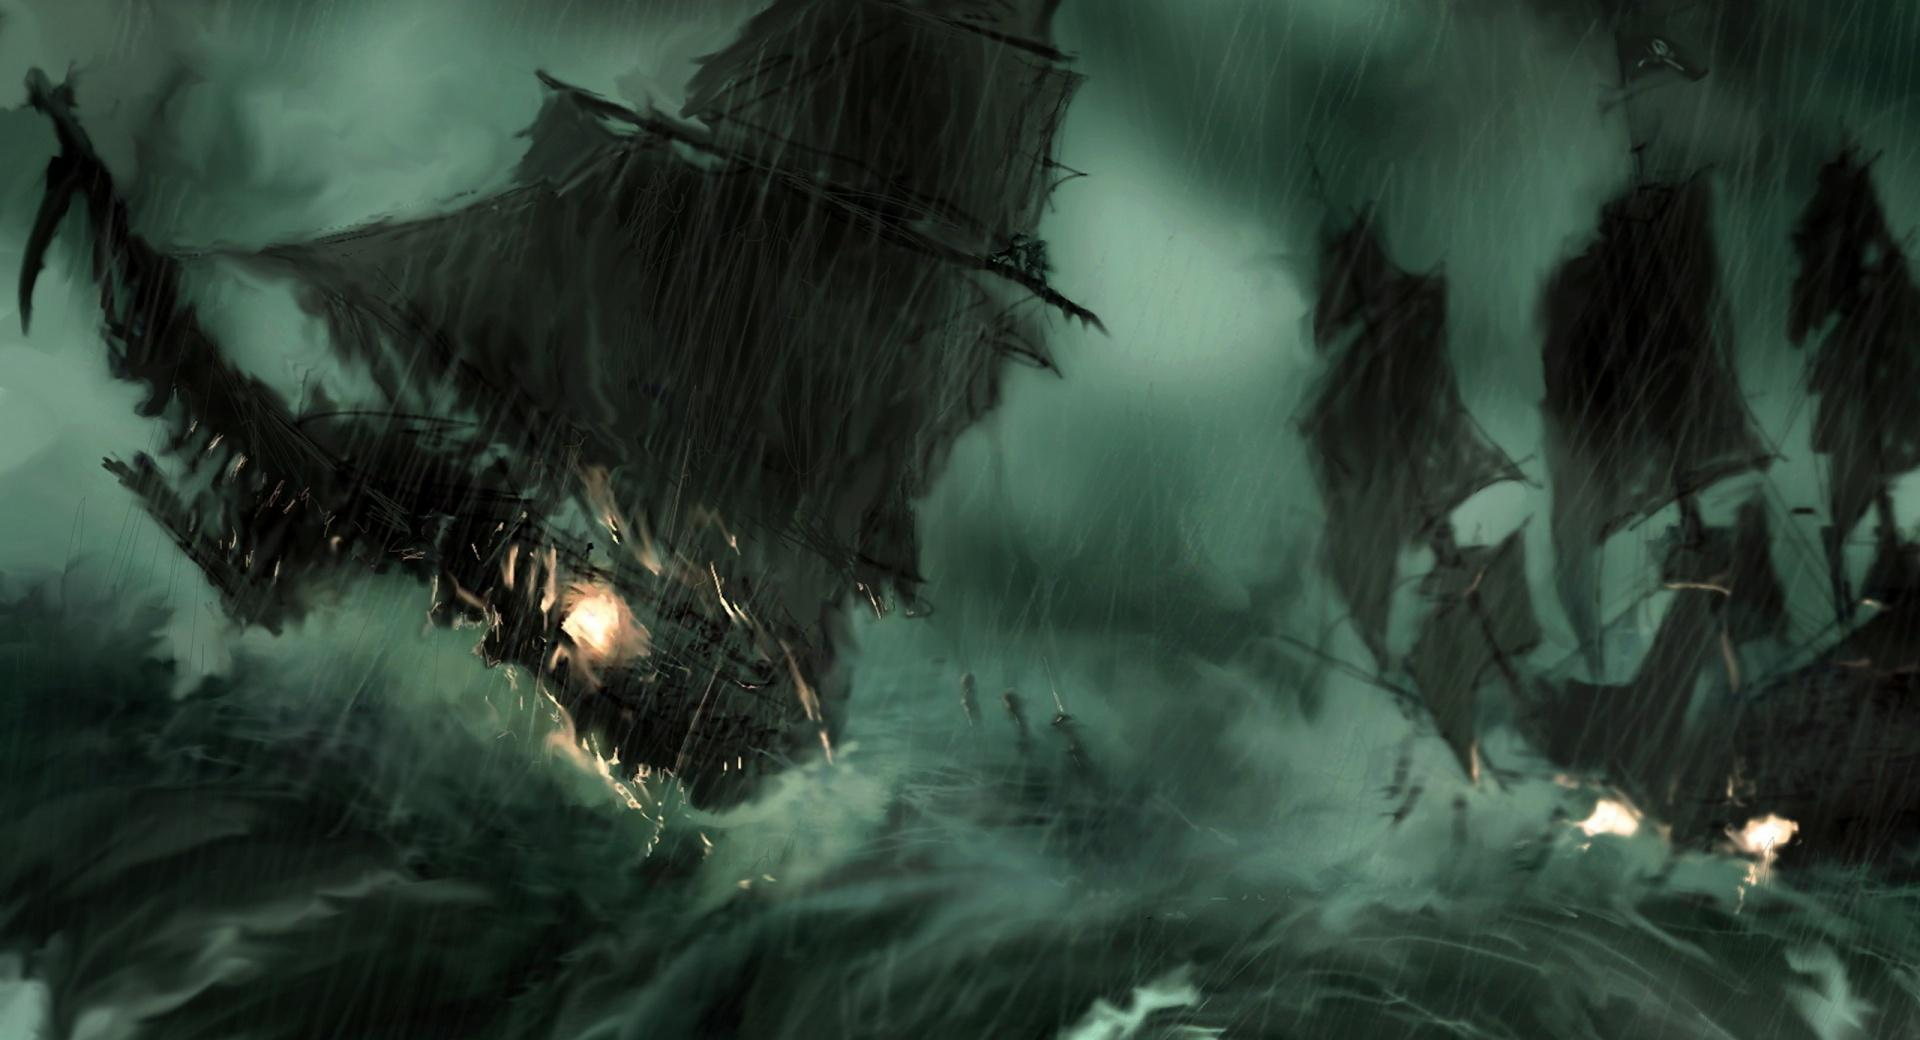 Ships On Storm wallpapers HD quality